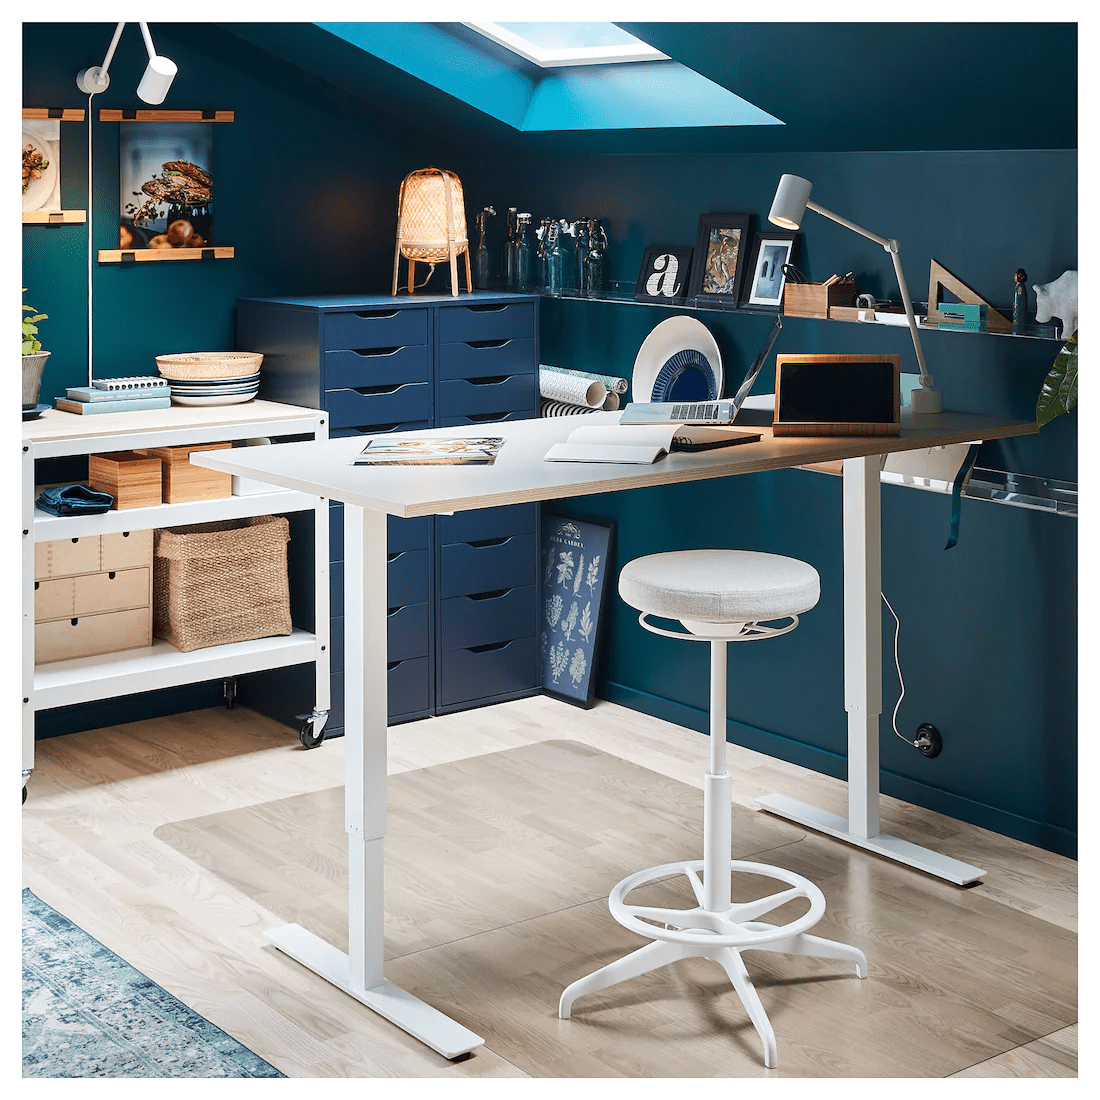 13 Best Standing Desks Converters With Adjustable Height To Upgrade Your Wfh Office